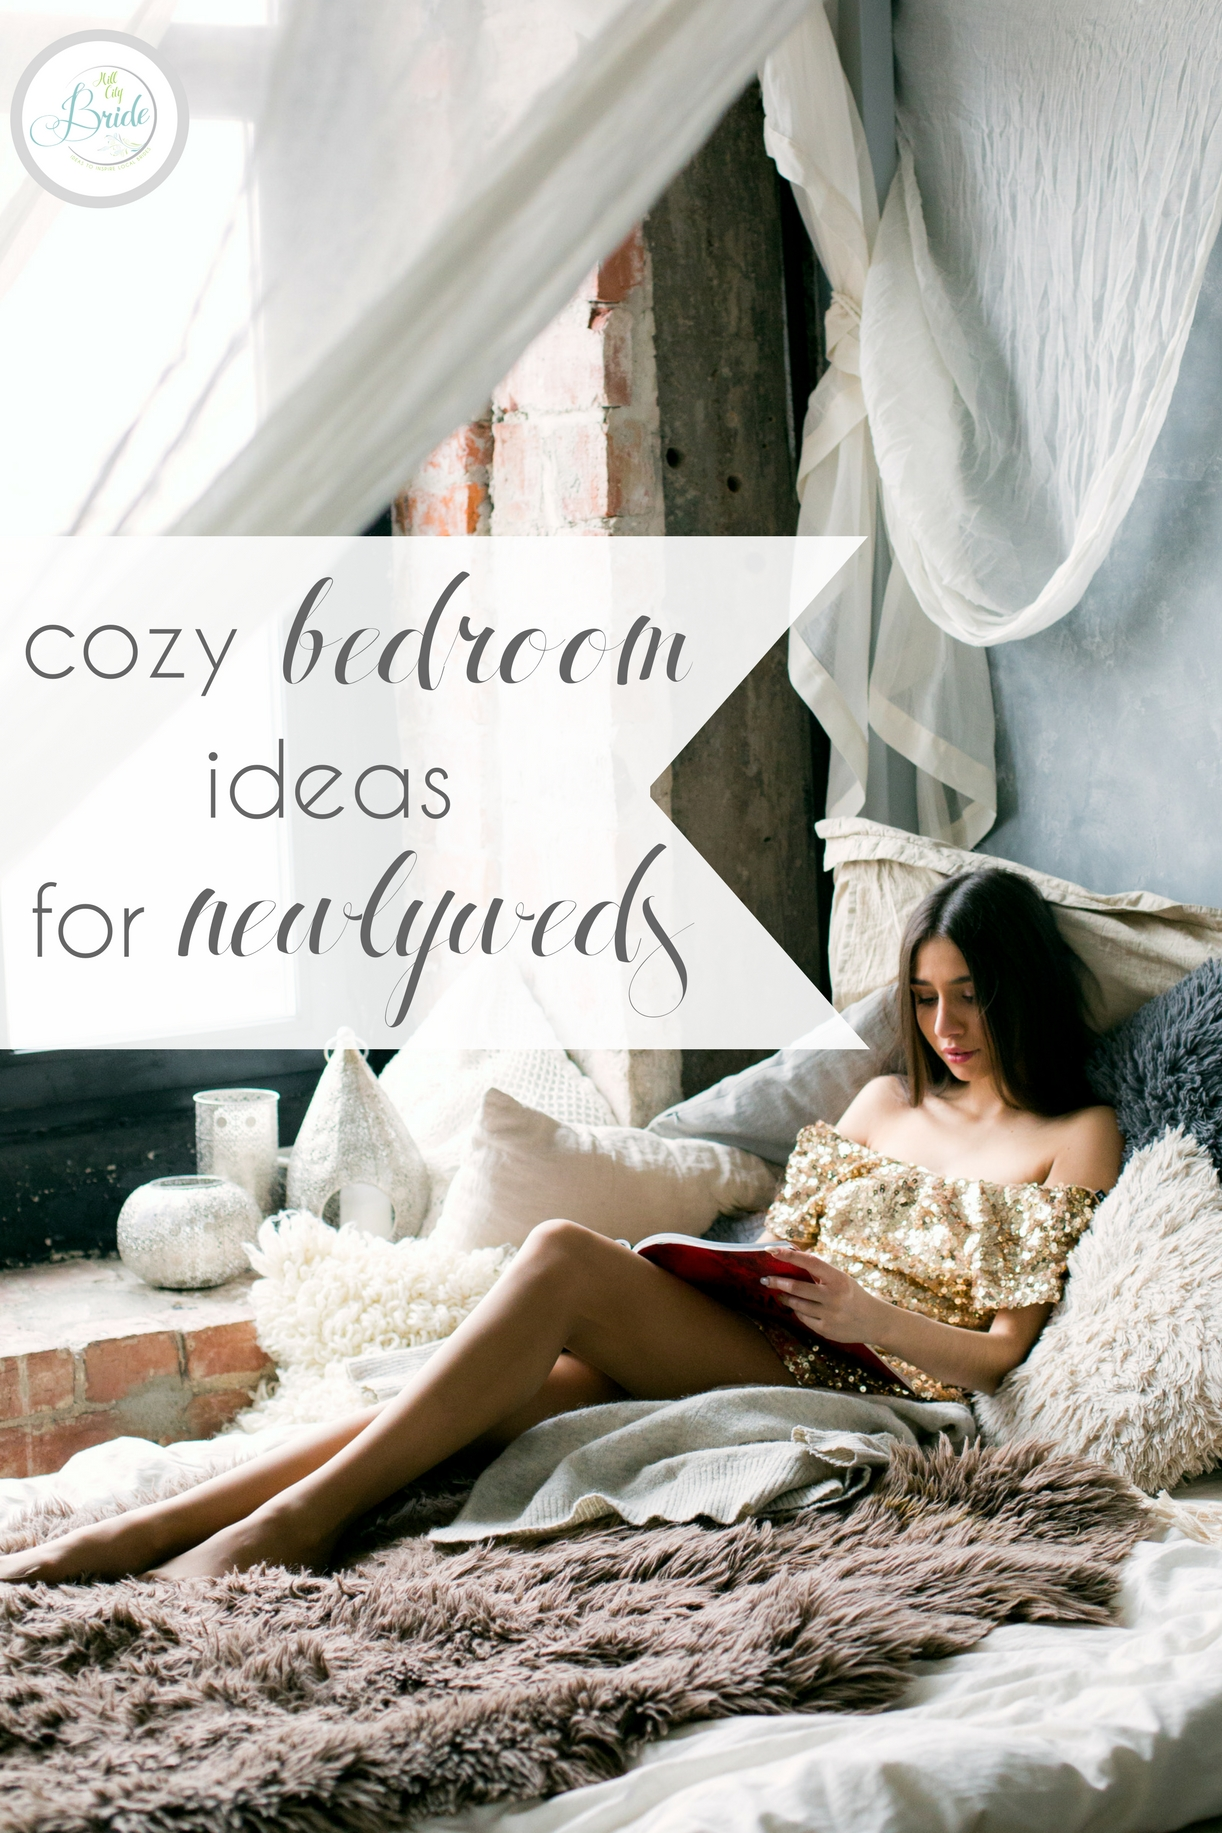 Cozy Bedroom Ideas For Newlyweds » Hill City Bride | Virginia Wedding Blog